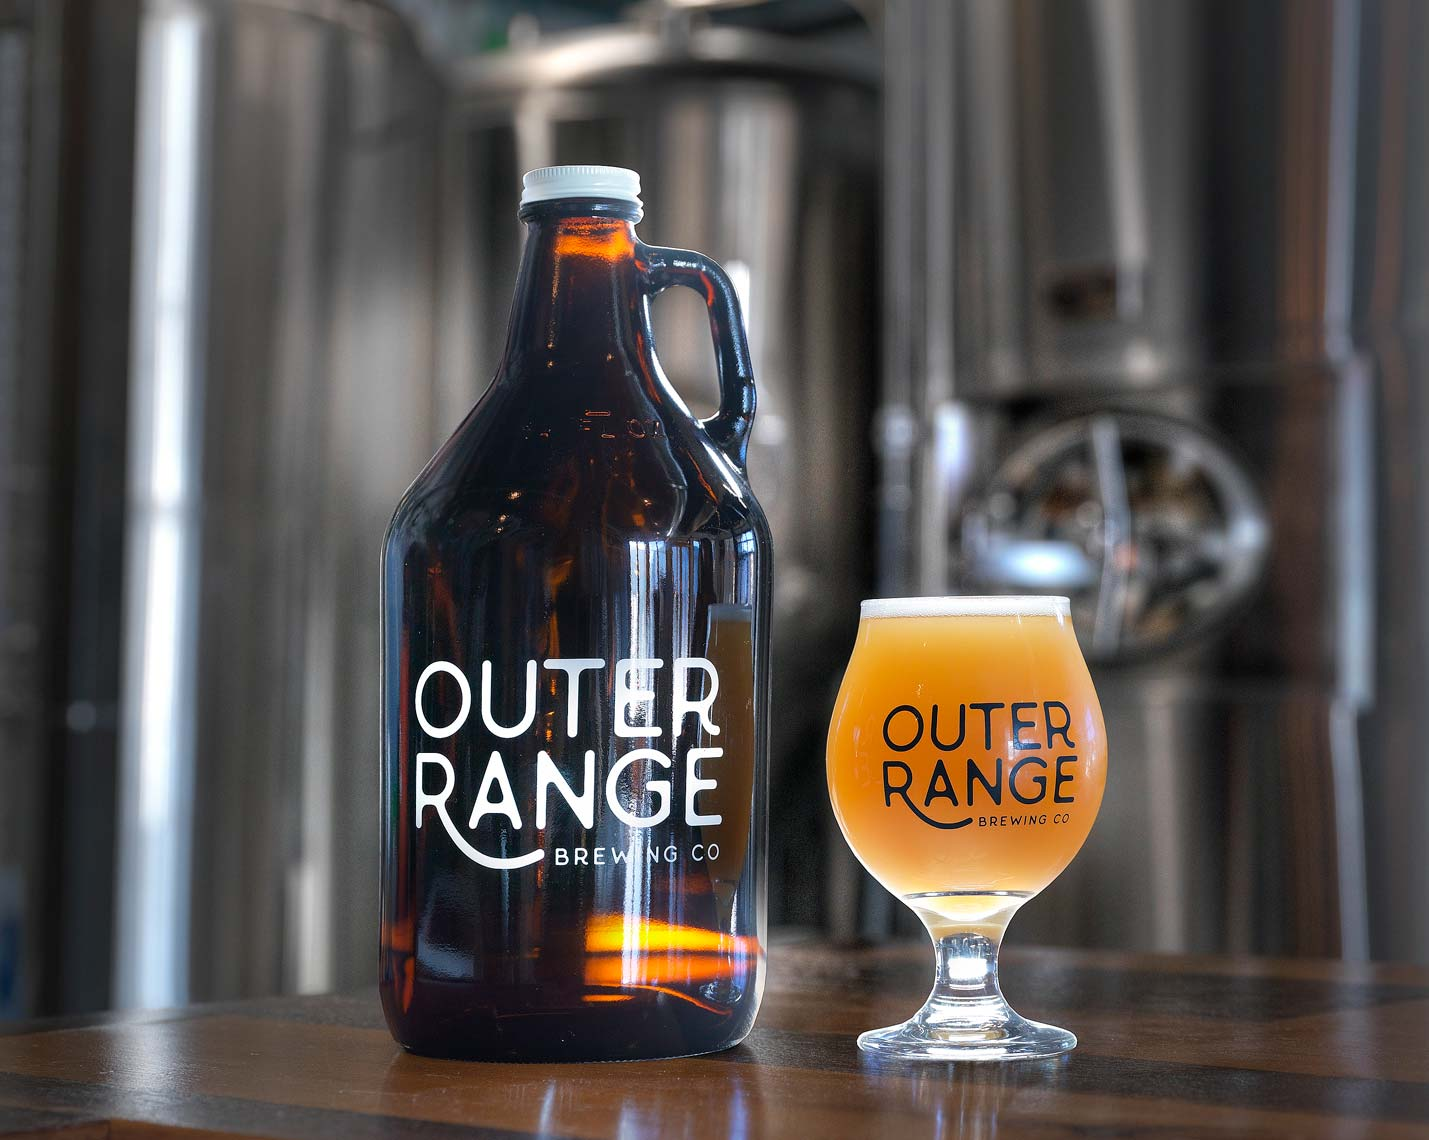 Outer Range Brewery